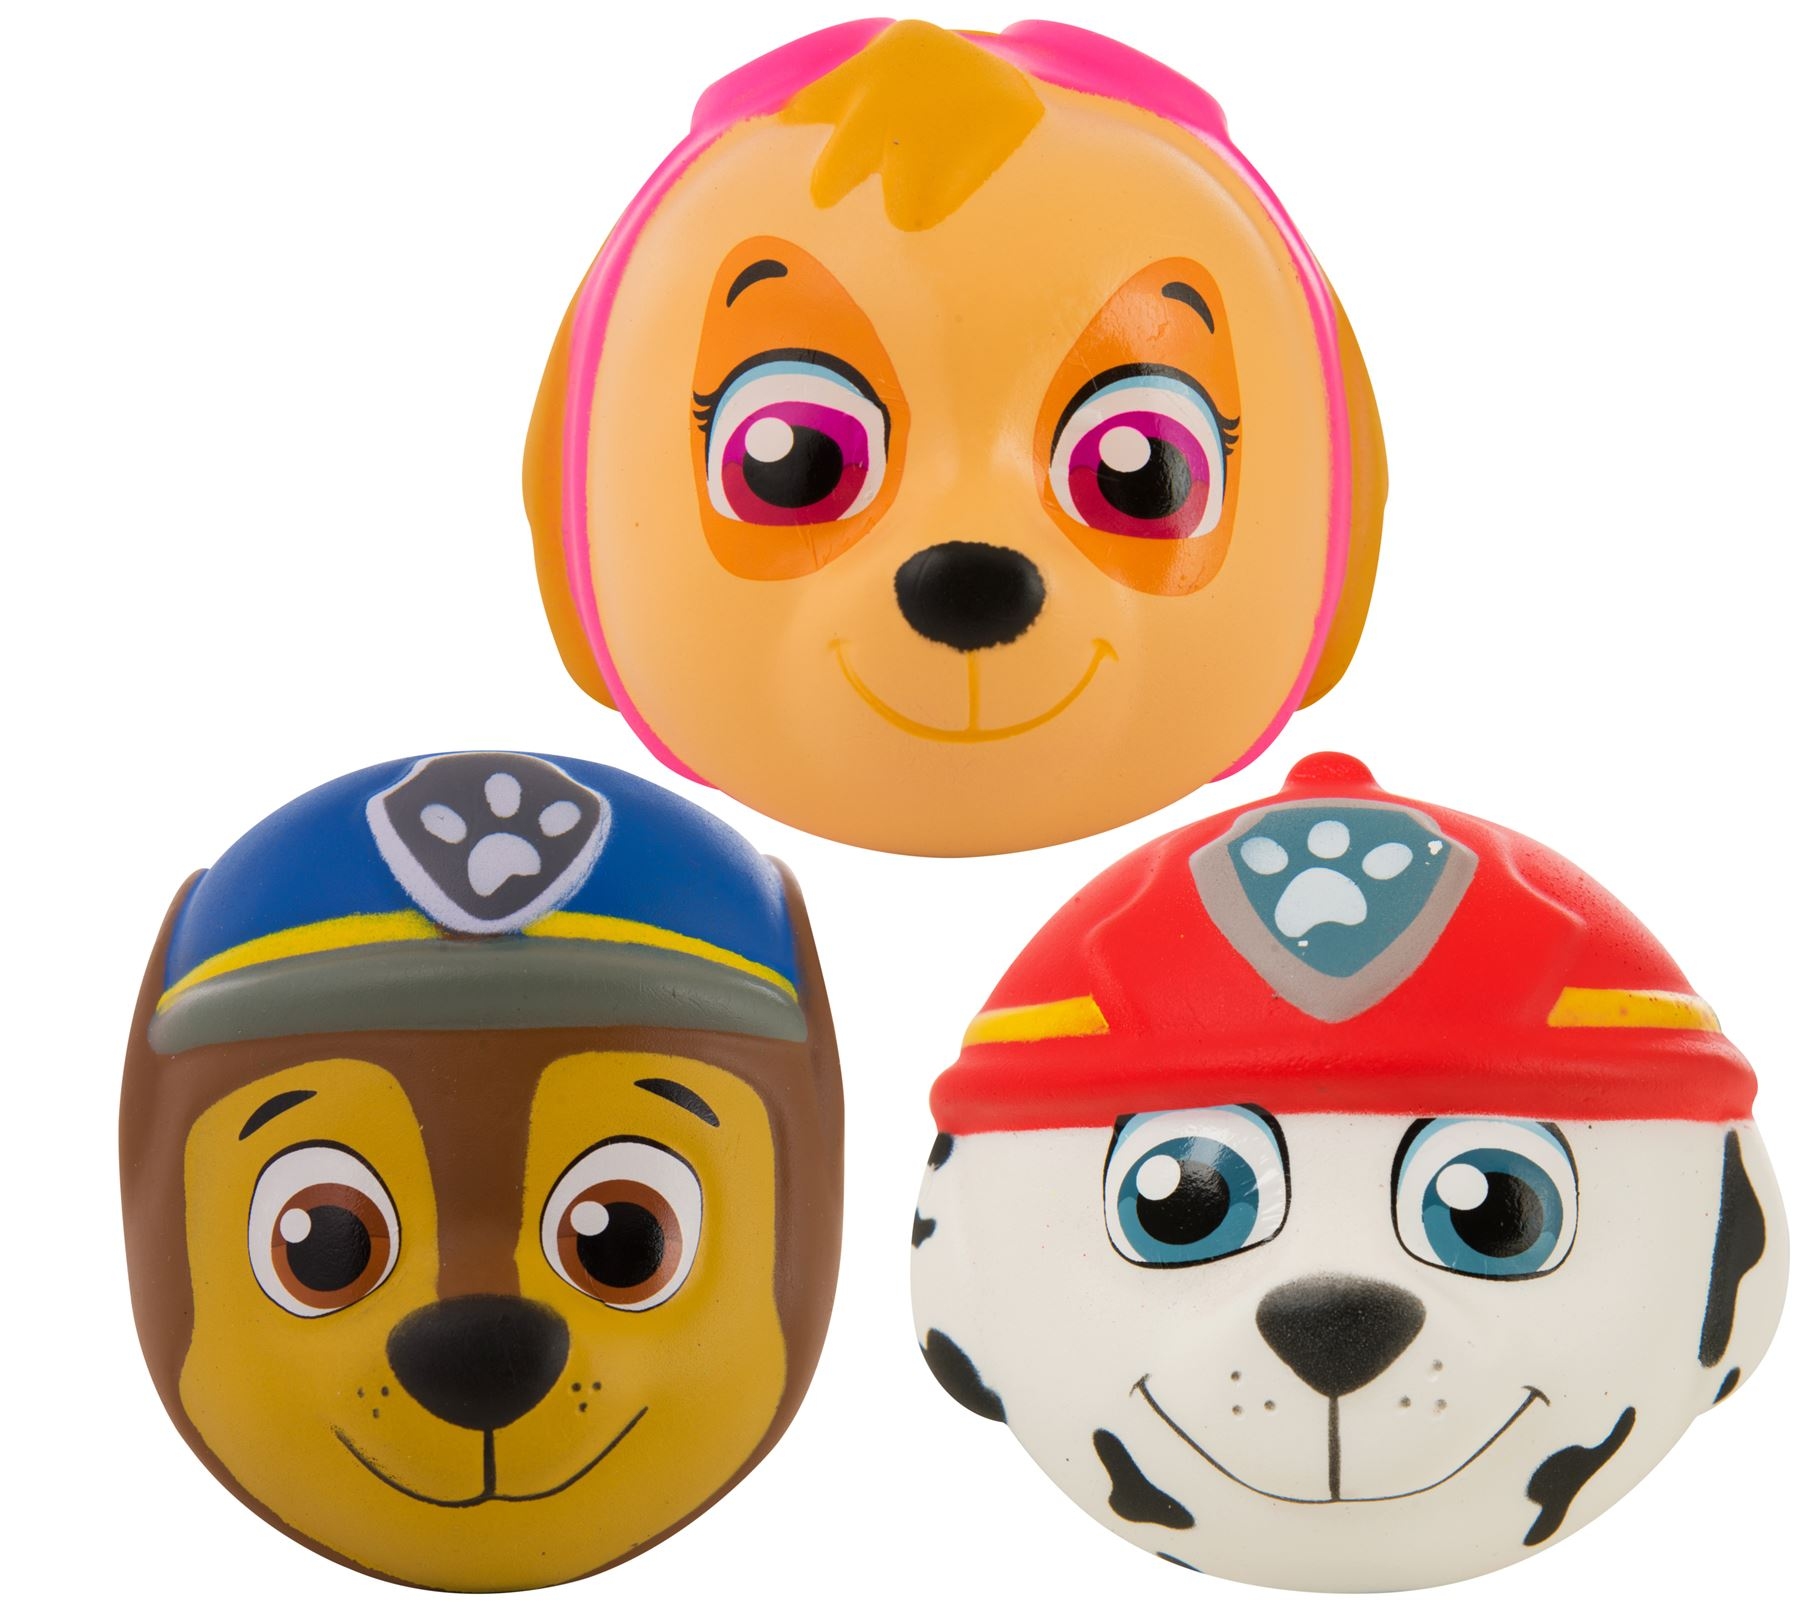 Details about Paw Patrol Squishy Toy Chase, Skye, Marshall